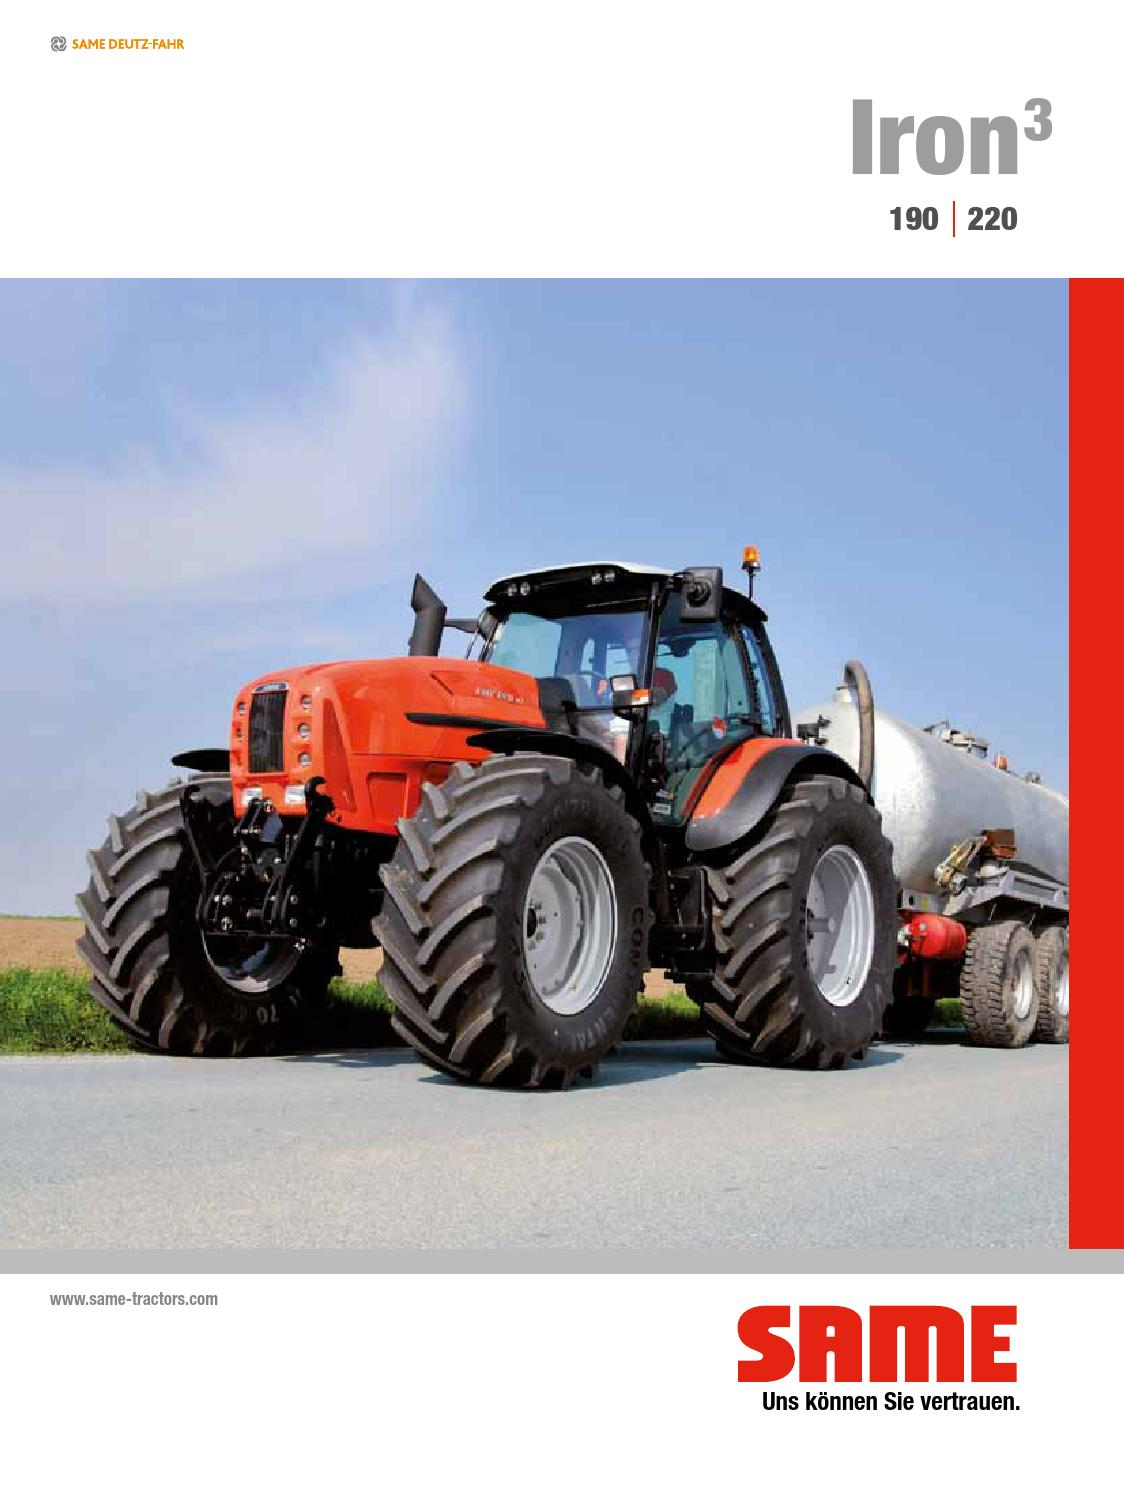 308 8509 5 1 1 iron3 190 220 de by SAME - Tractors - issuu